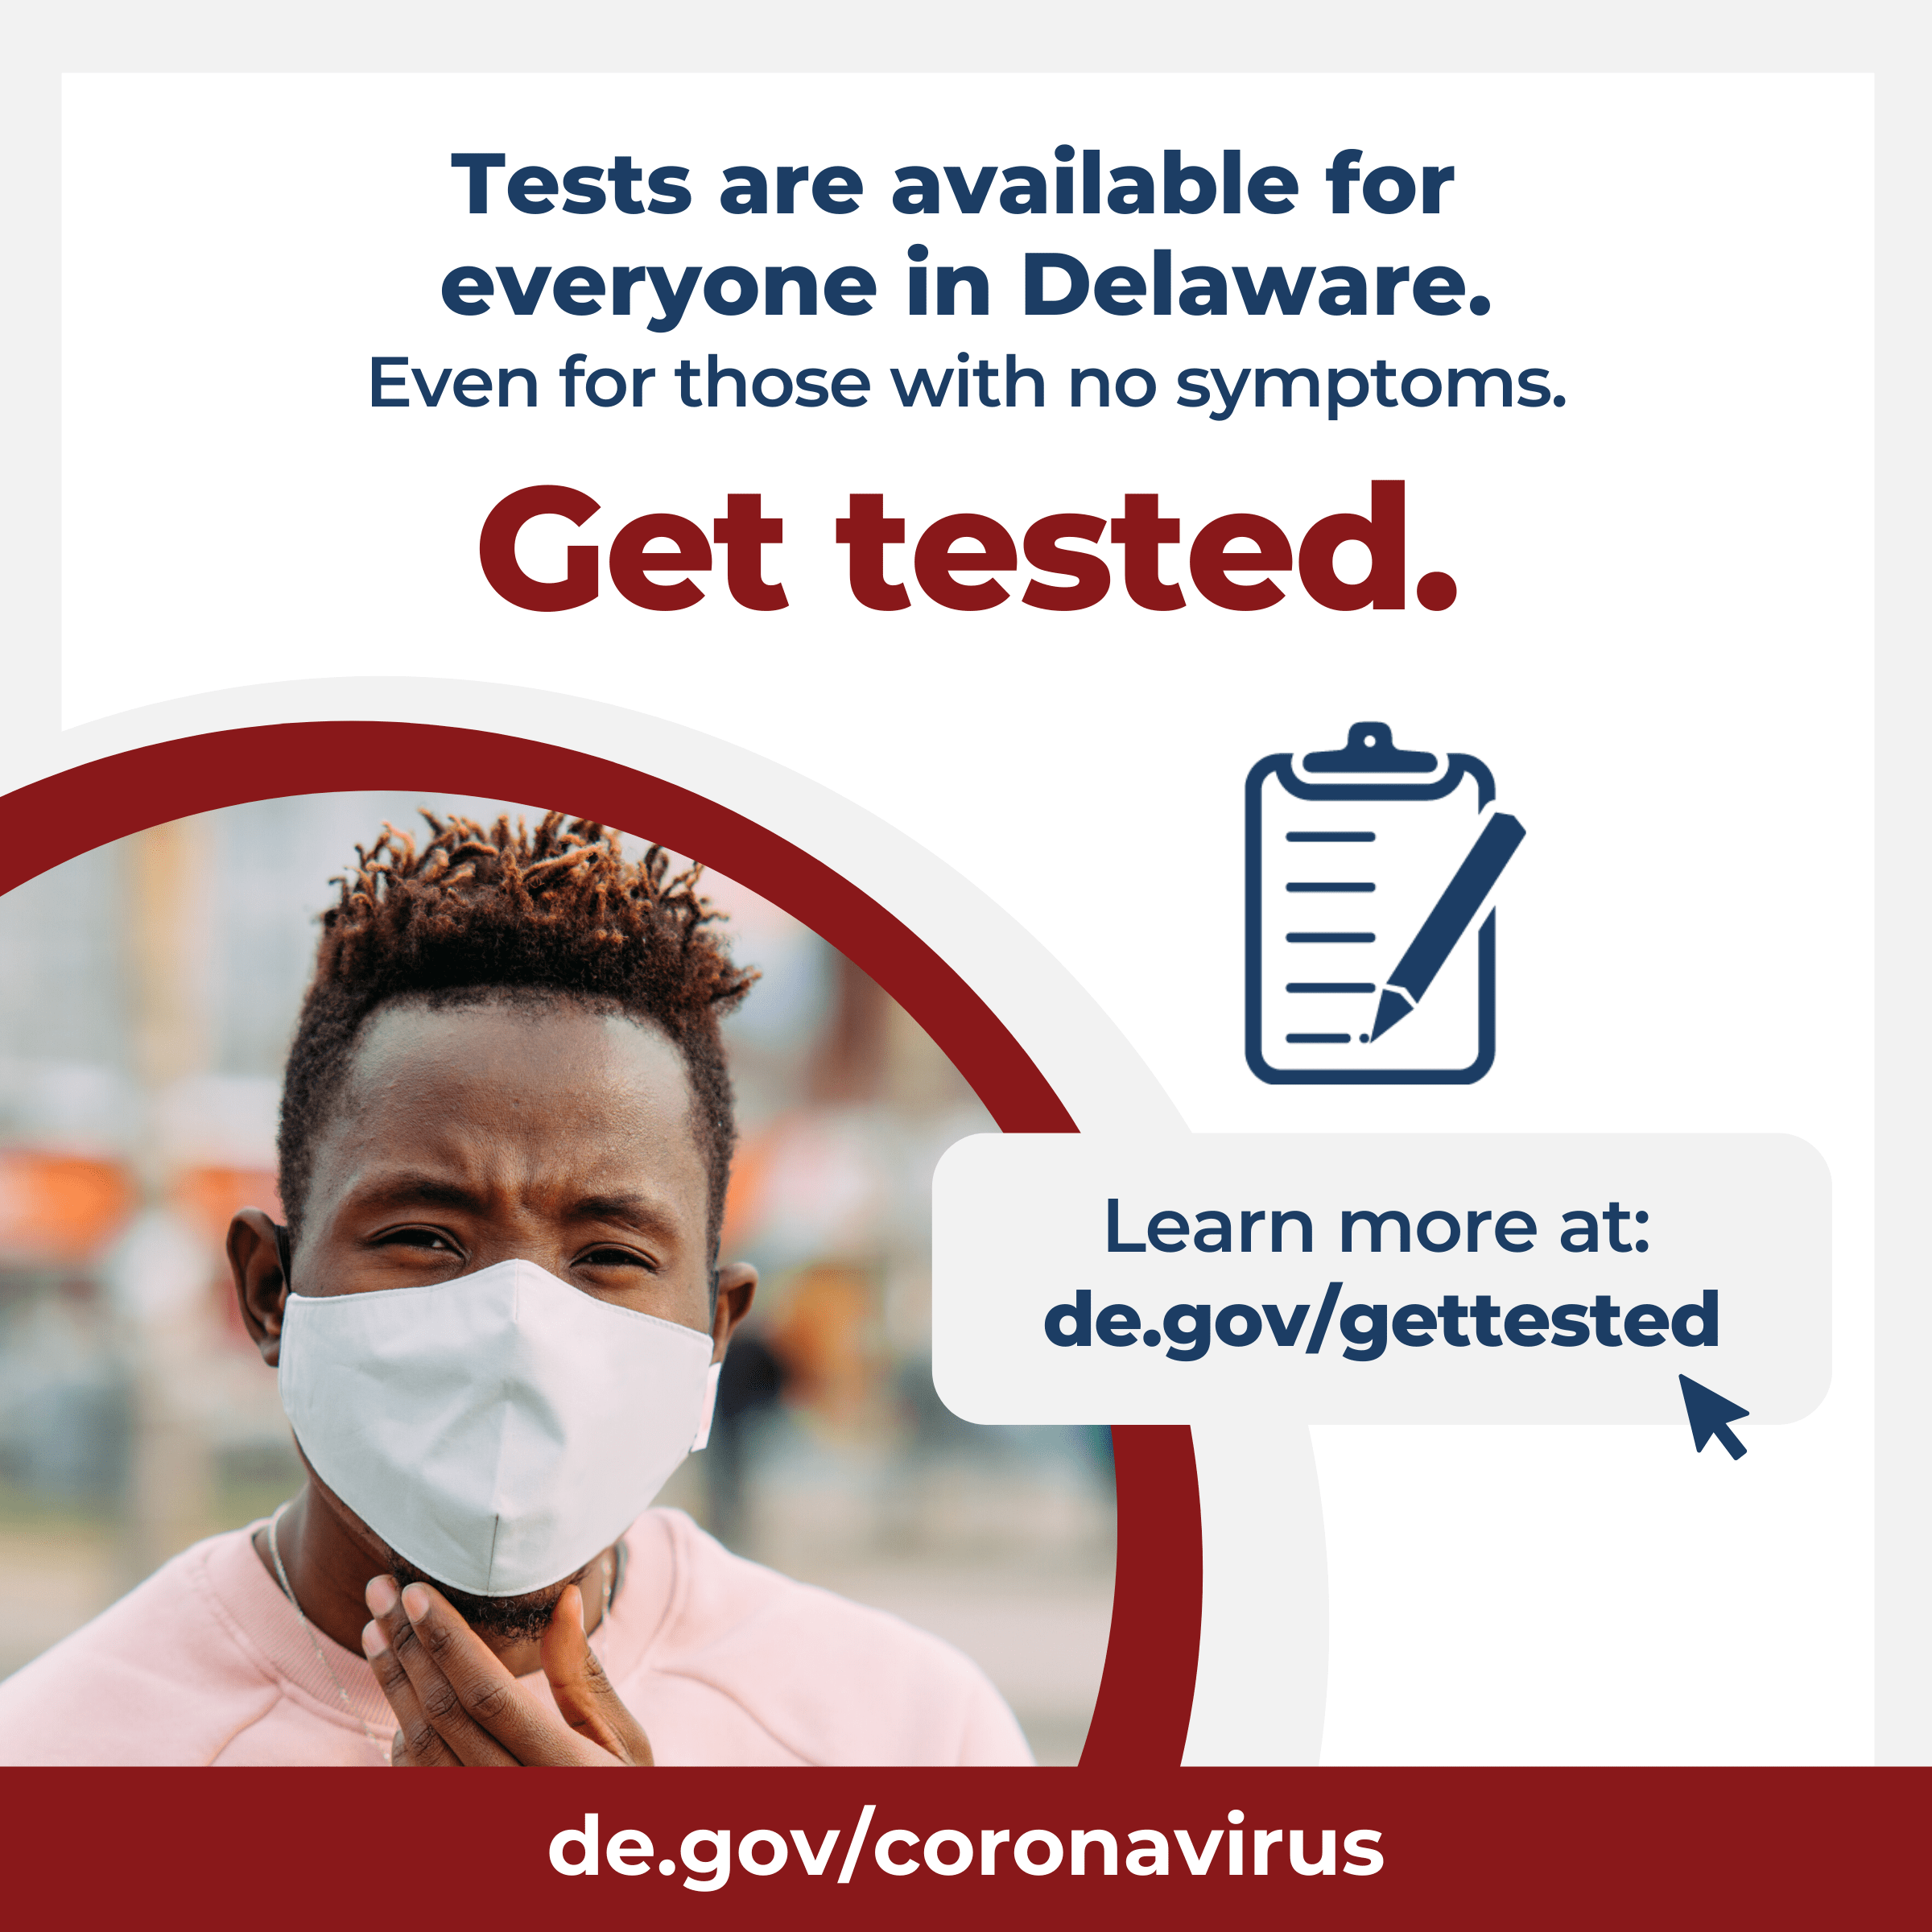 Tests are available for everyone in Delaware.